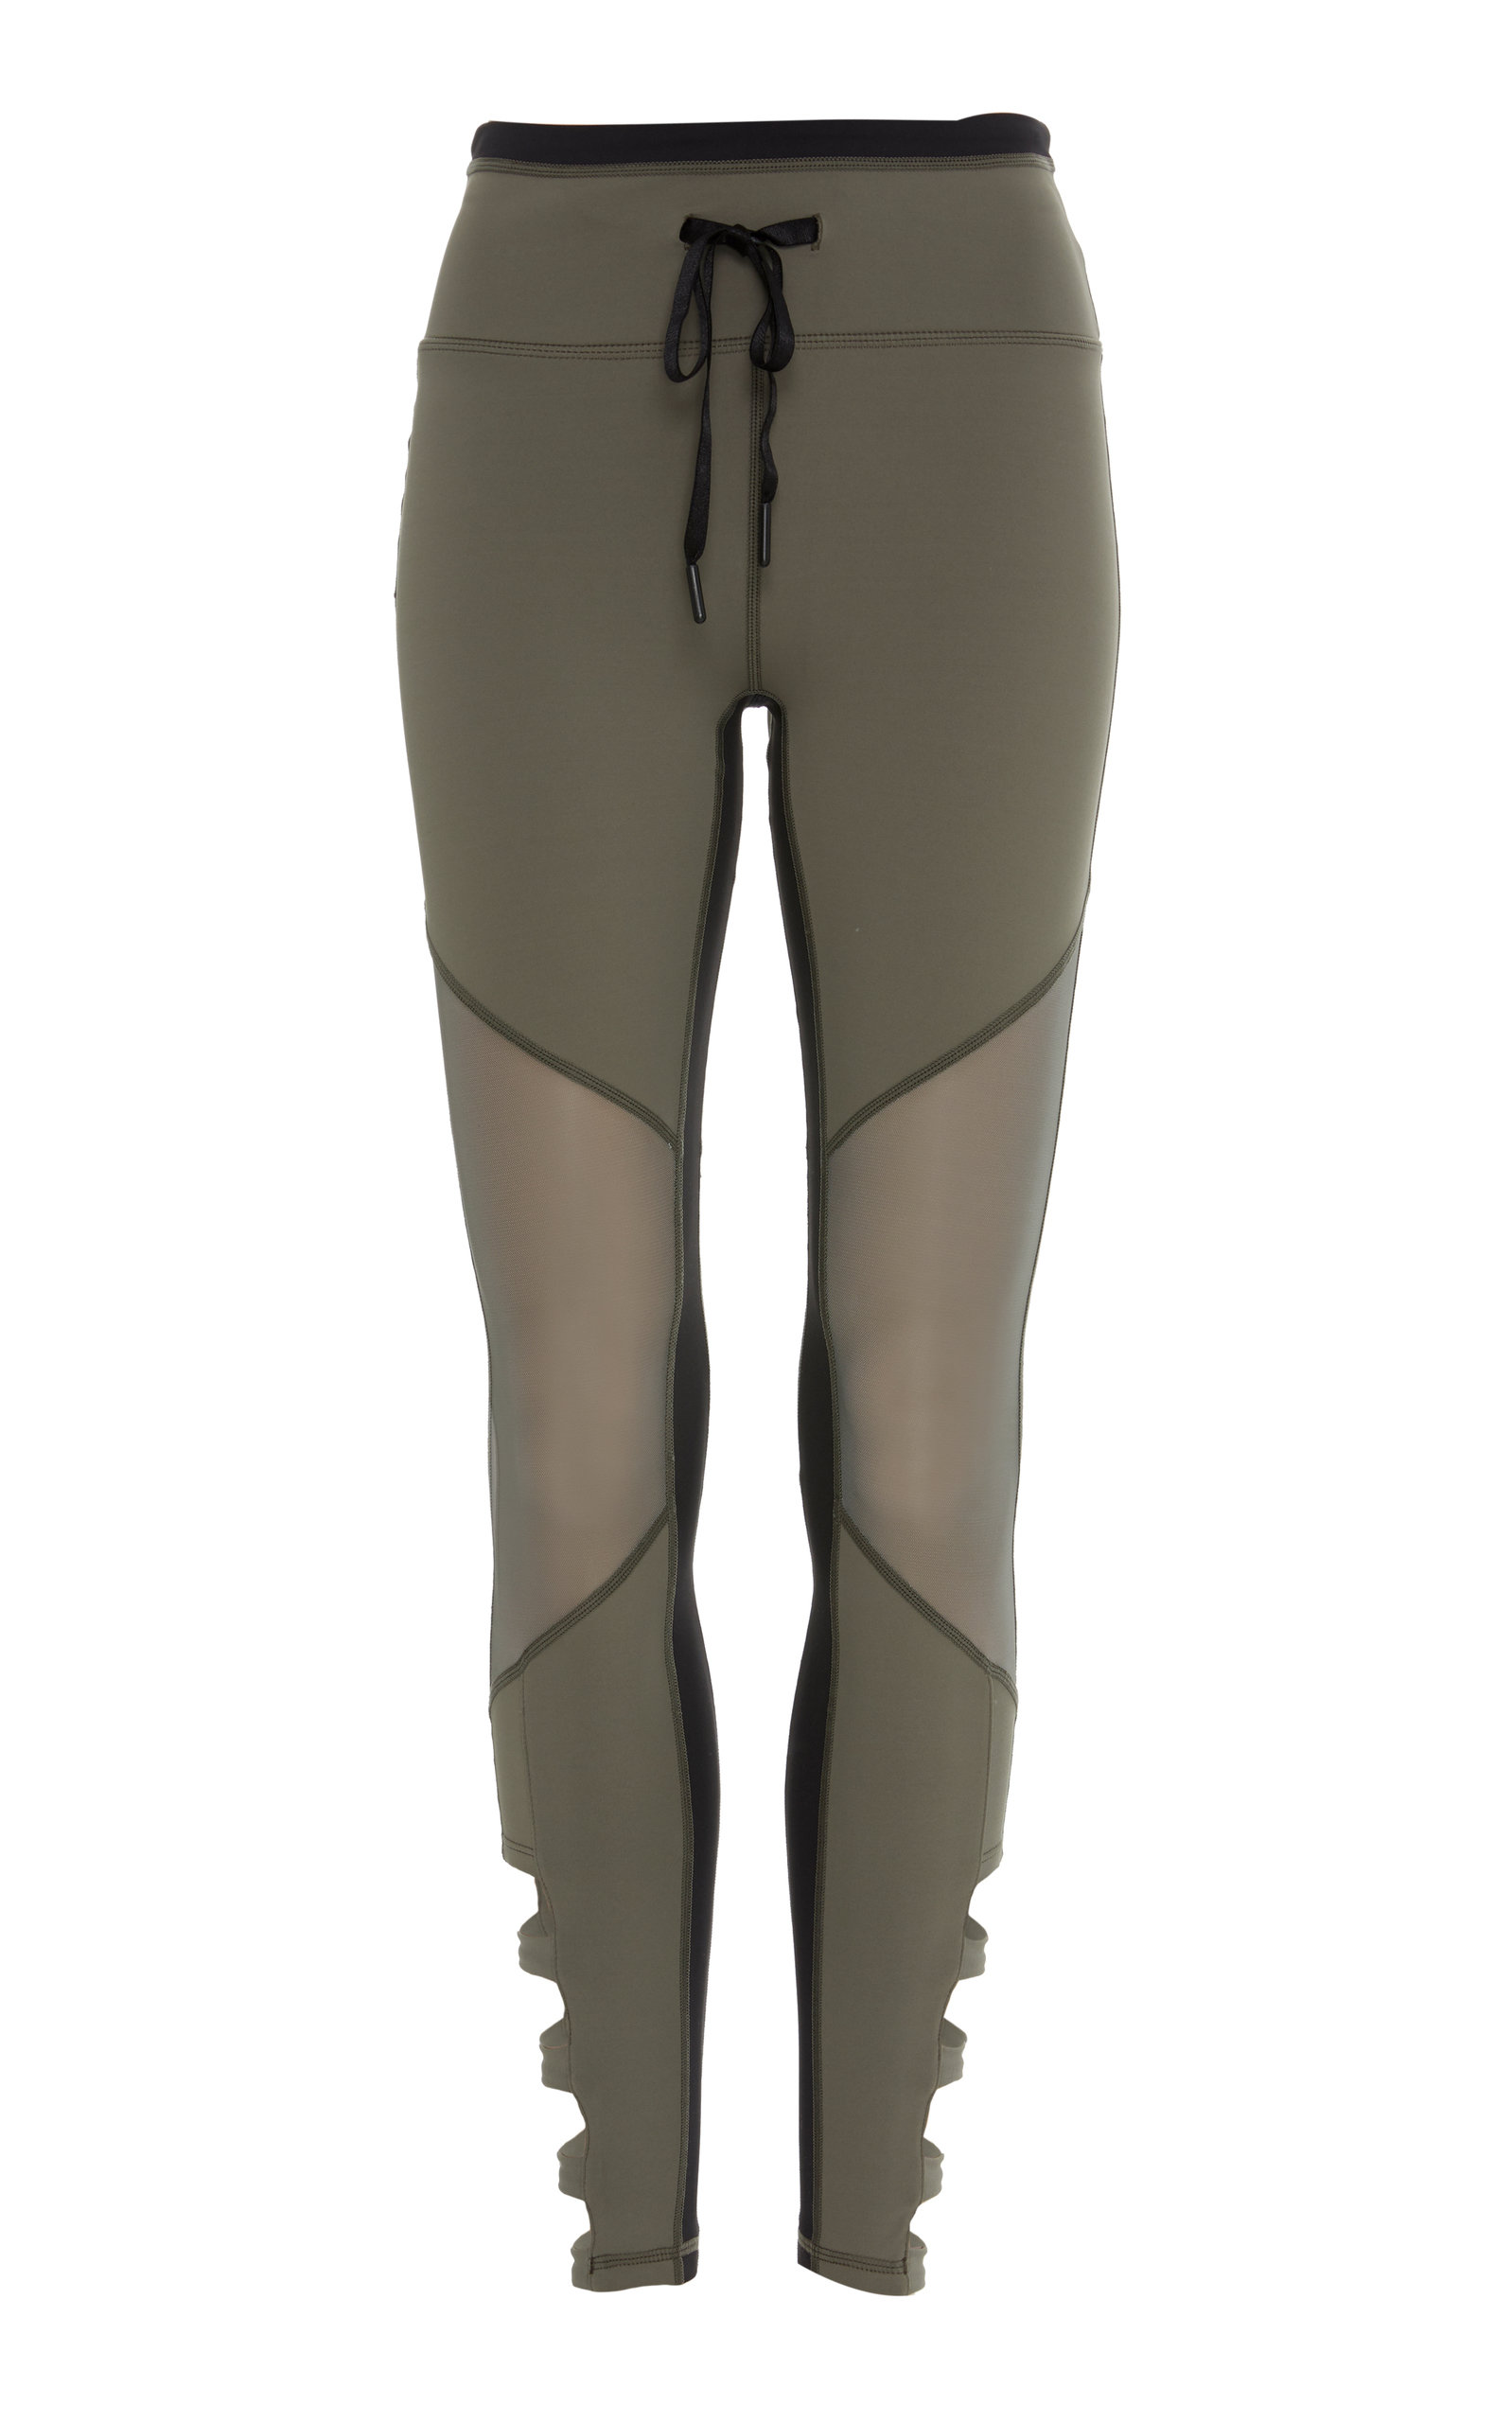 ALL FENIX Selene Pants in Green